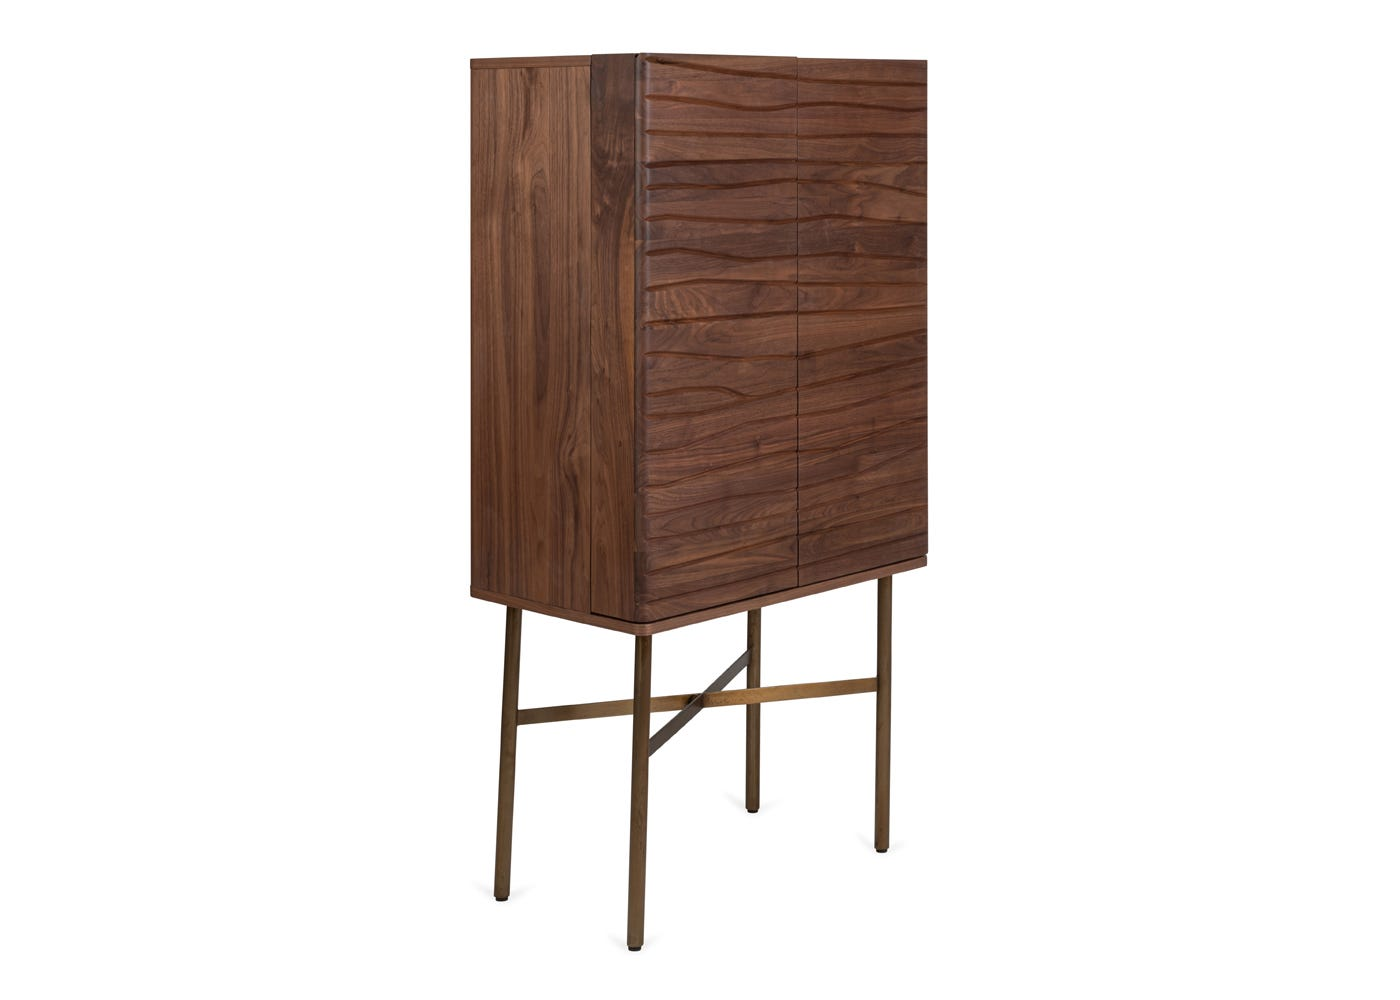 As shown: Valentina drinks cabinet - Side profile.